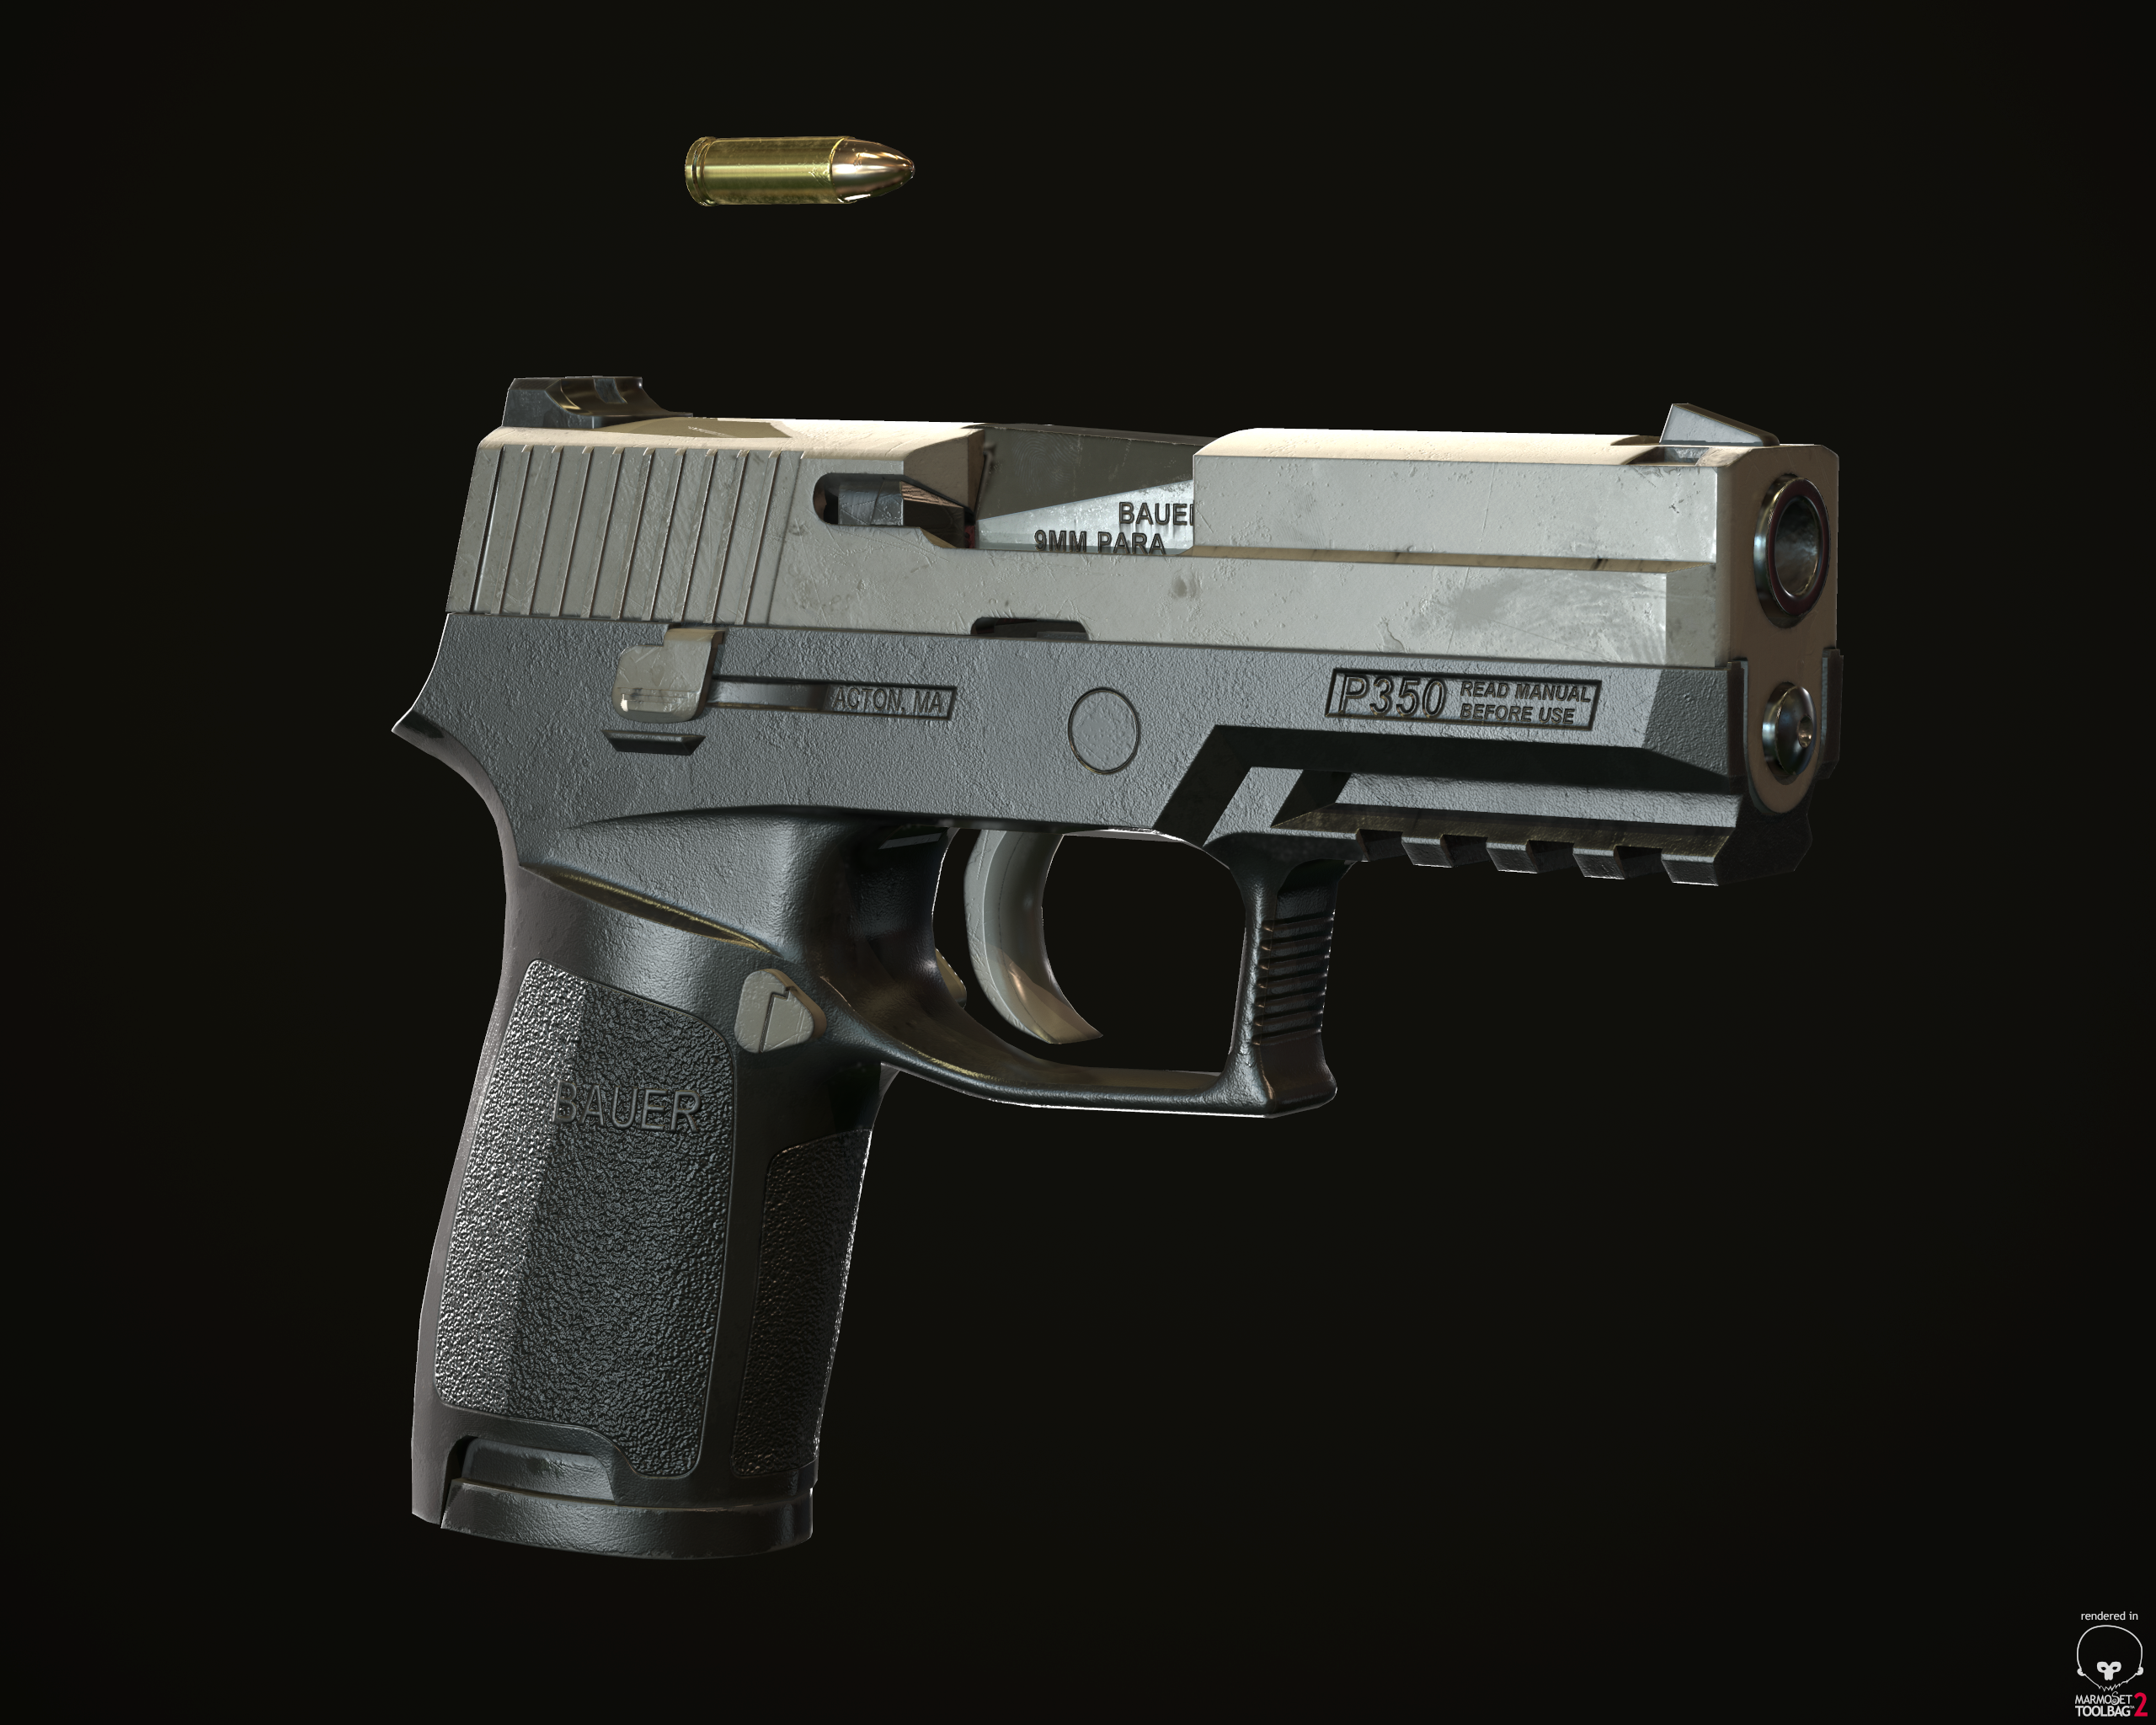 This is the BAUER P350 (SIG P250). Standard issue pistol